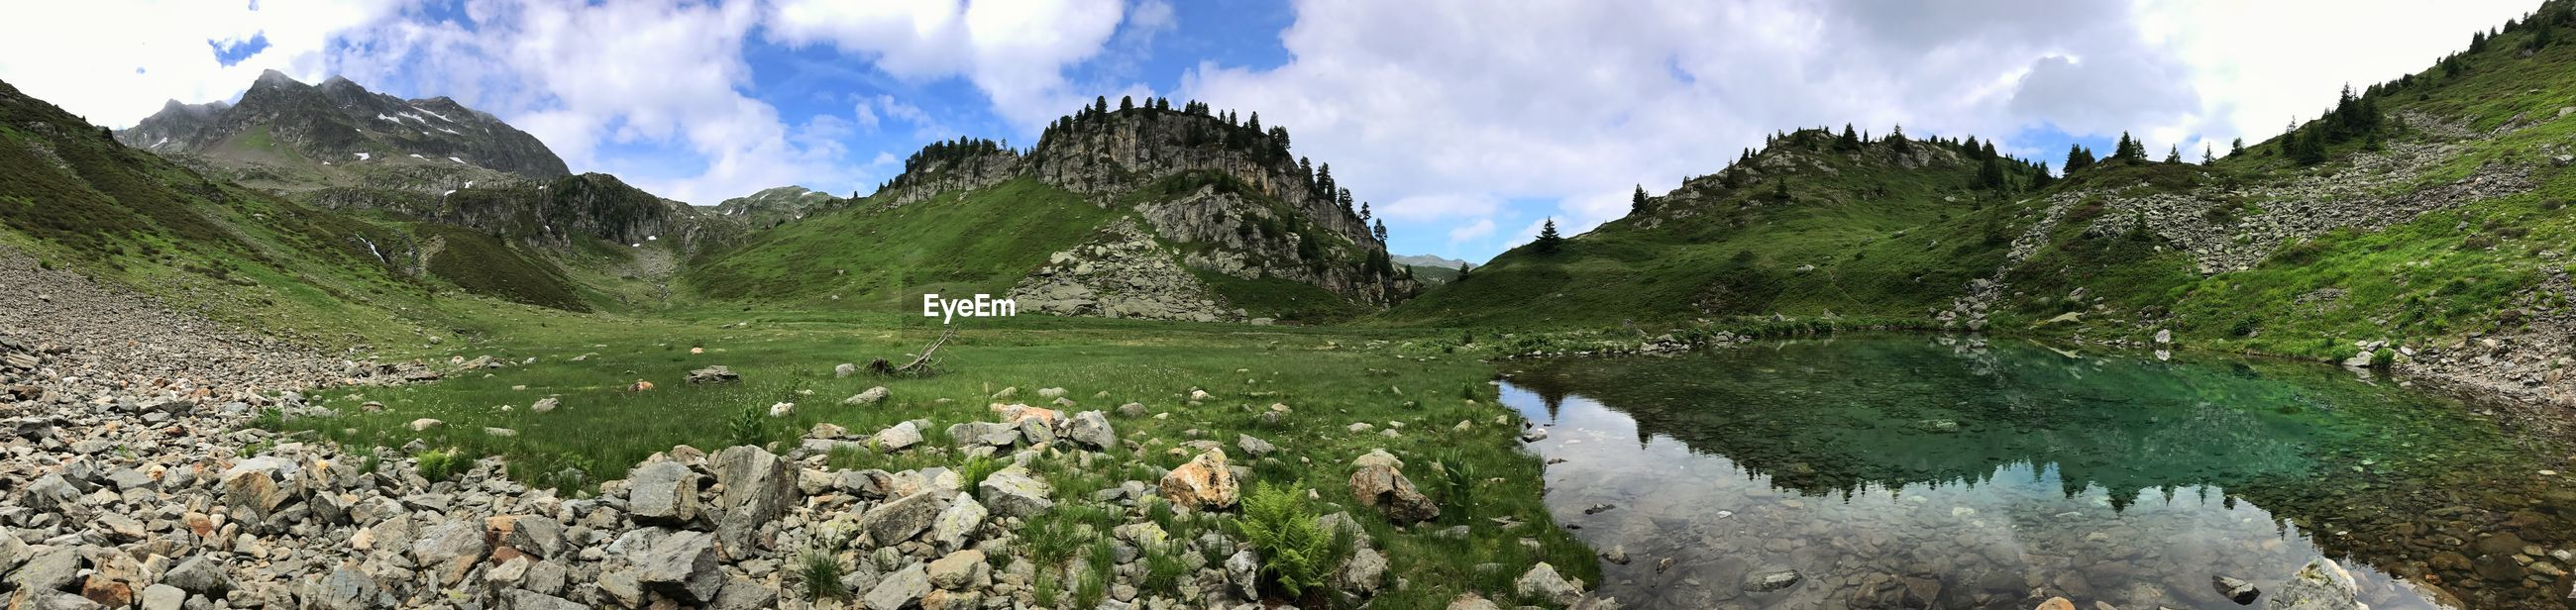 PANORAMIC VIEW OF LAKE BY MOUNTAINS AGAINST SKY